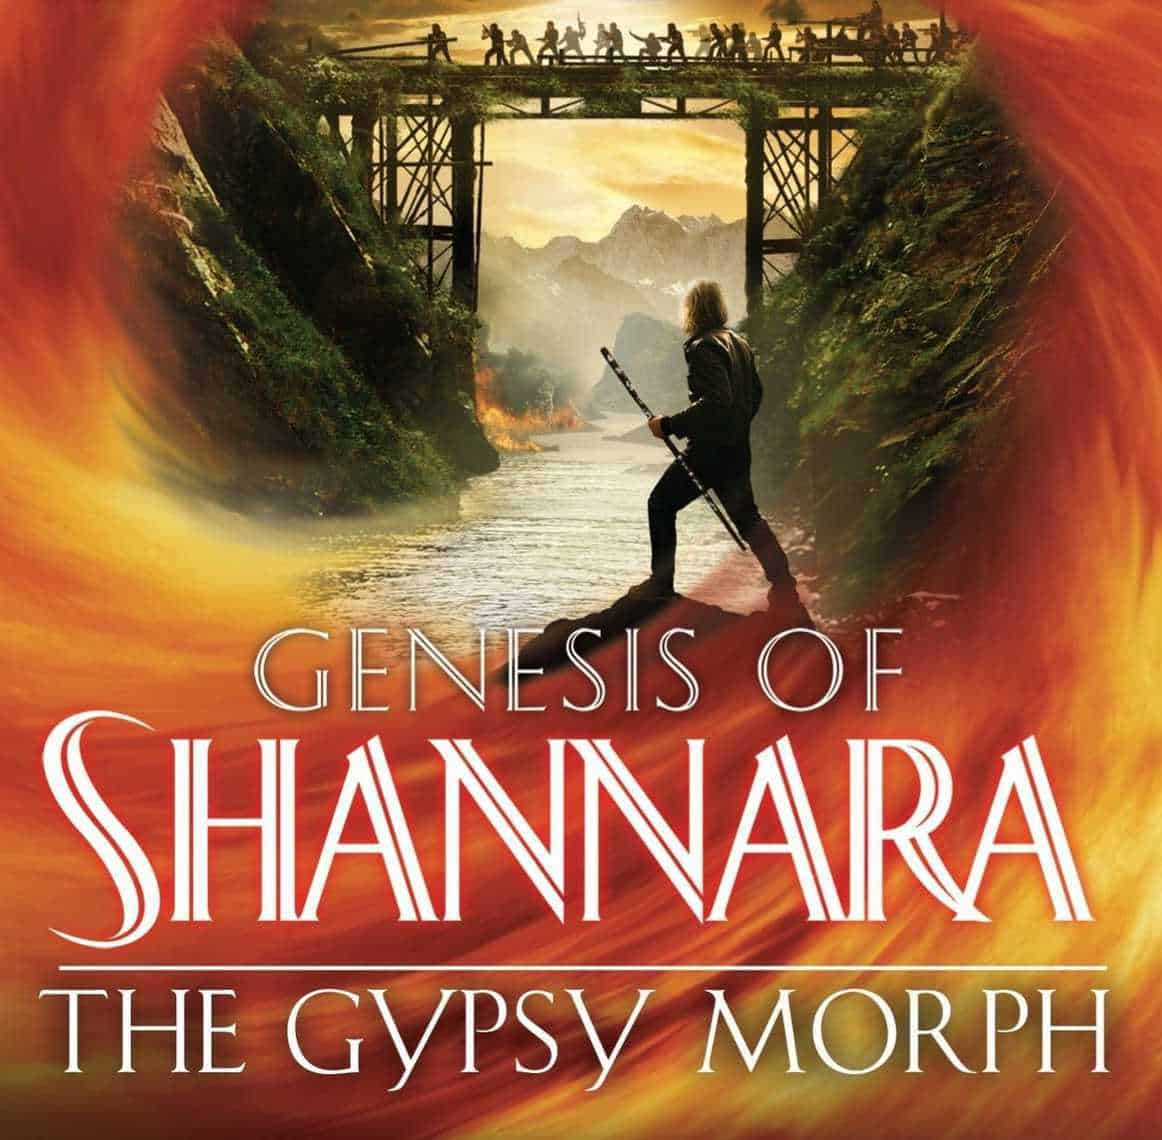 The Gypsy Morph Audiobook Free Download and Listen